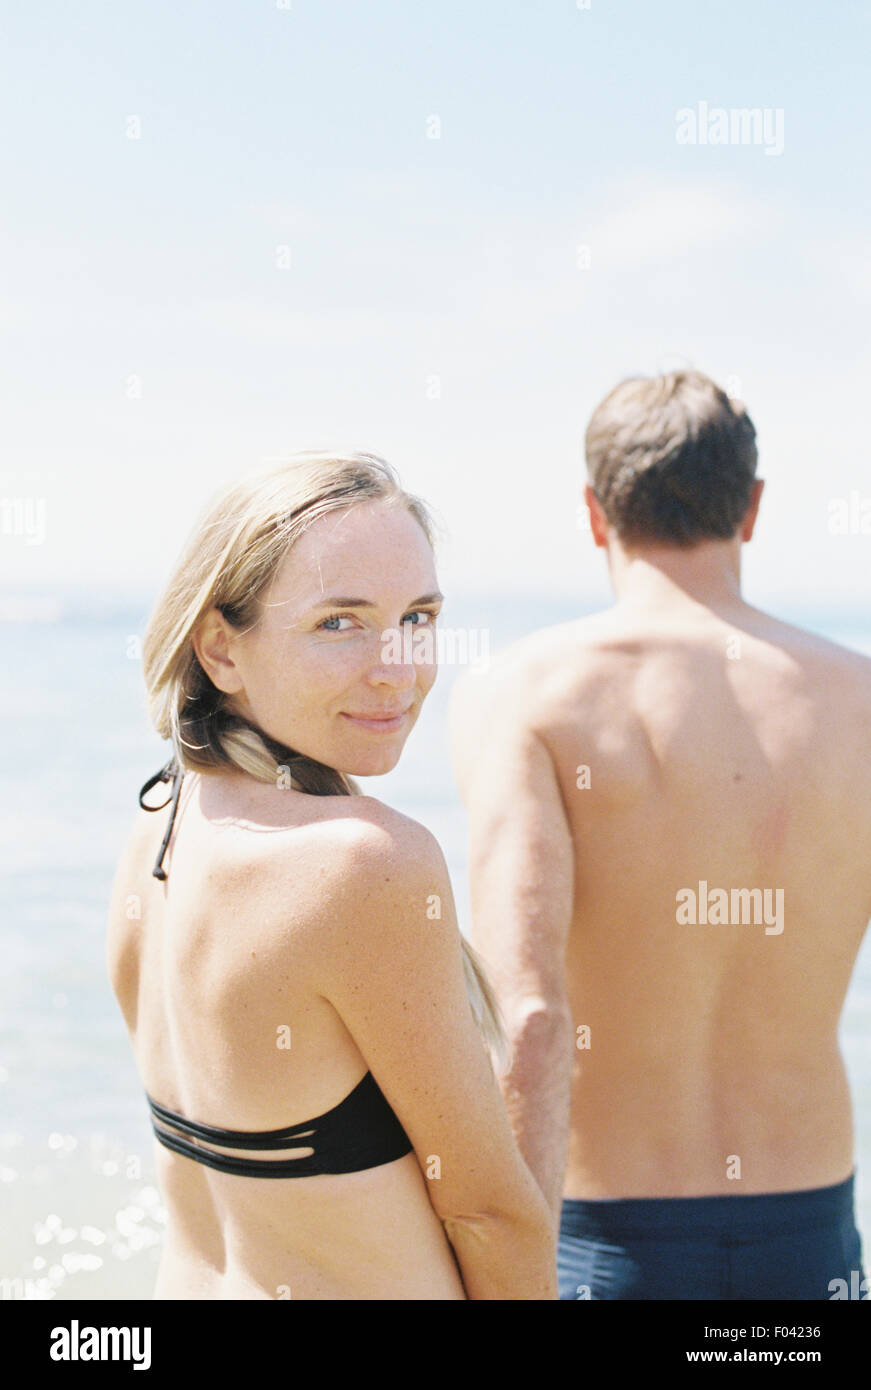 Couple in swimwear by the ocean, woman smiling at camera. - Stock Image